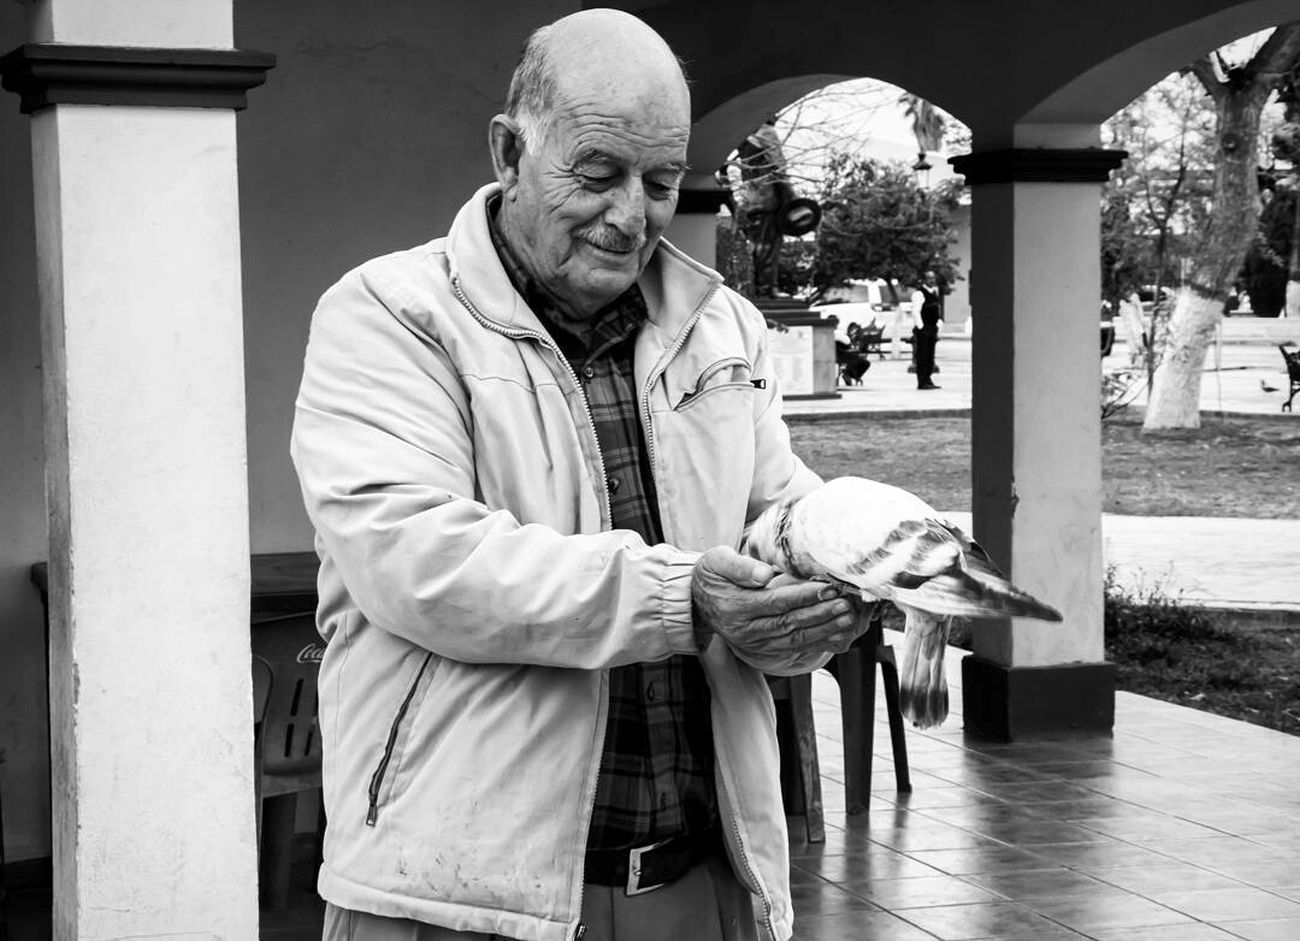 Only Men Birds Of EyeEm  People Adult Men Day Lifestyles One Person One Man Only Naturephotography Birds_collection Mr Bird Taking Photos Mexico Black And White Portrait Bird Photography Happiness Naturephotography Blackandwhite Photography Coahuila, México Coahuila